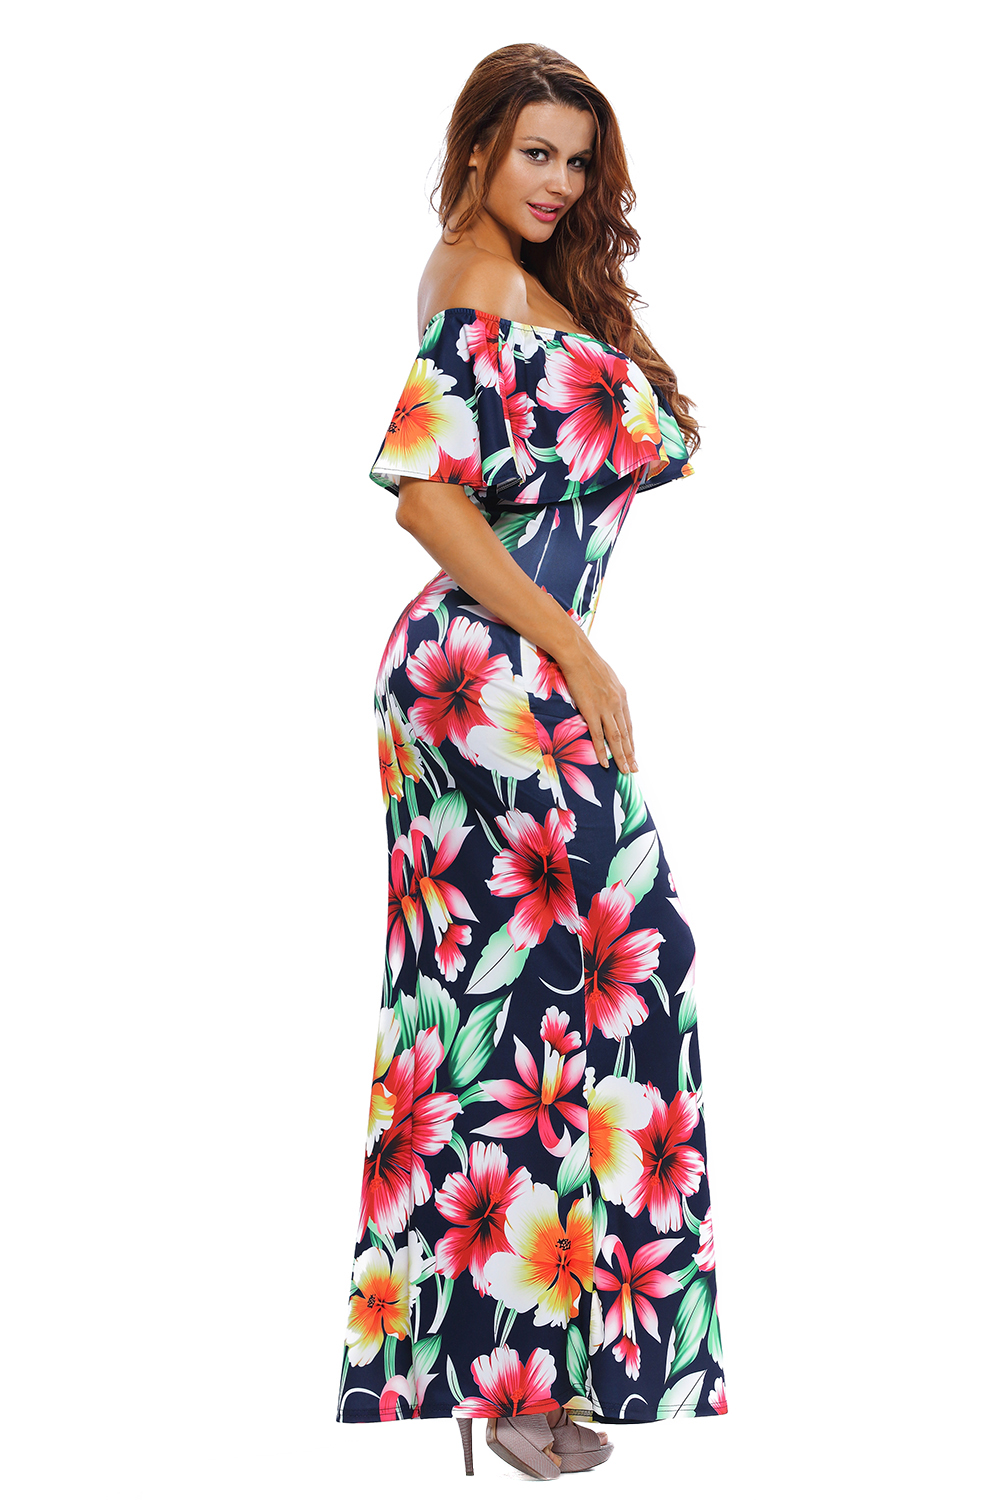 e0ebf34f7fc Details about Print Off-the-shoulder Maxi Dress Stage Dance Wear Women  Brief Cute Club Sexy